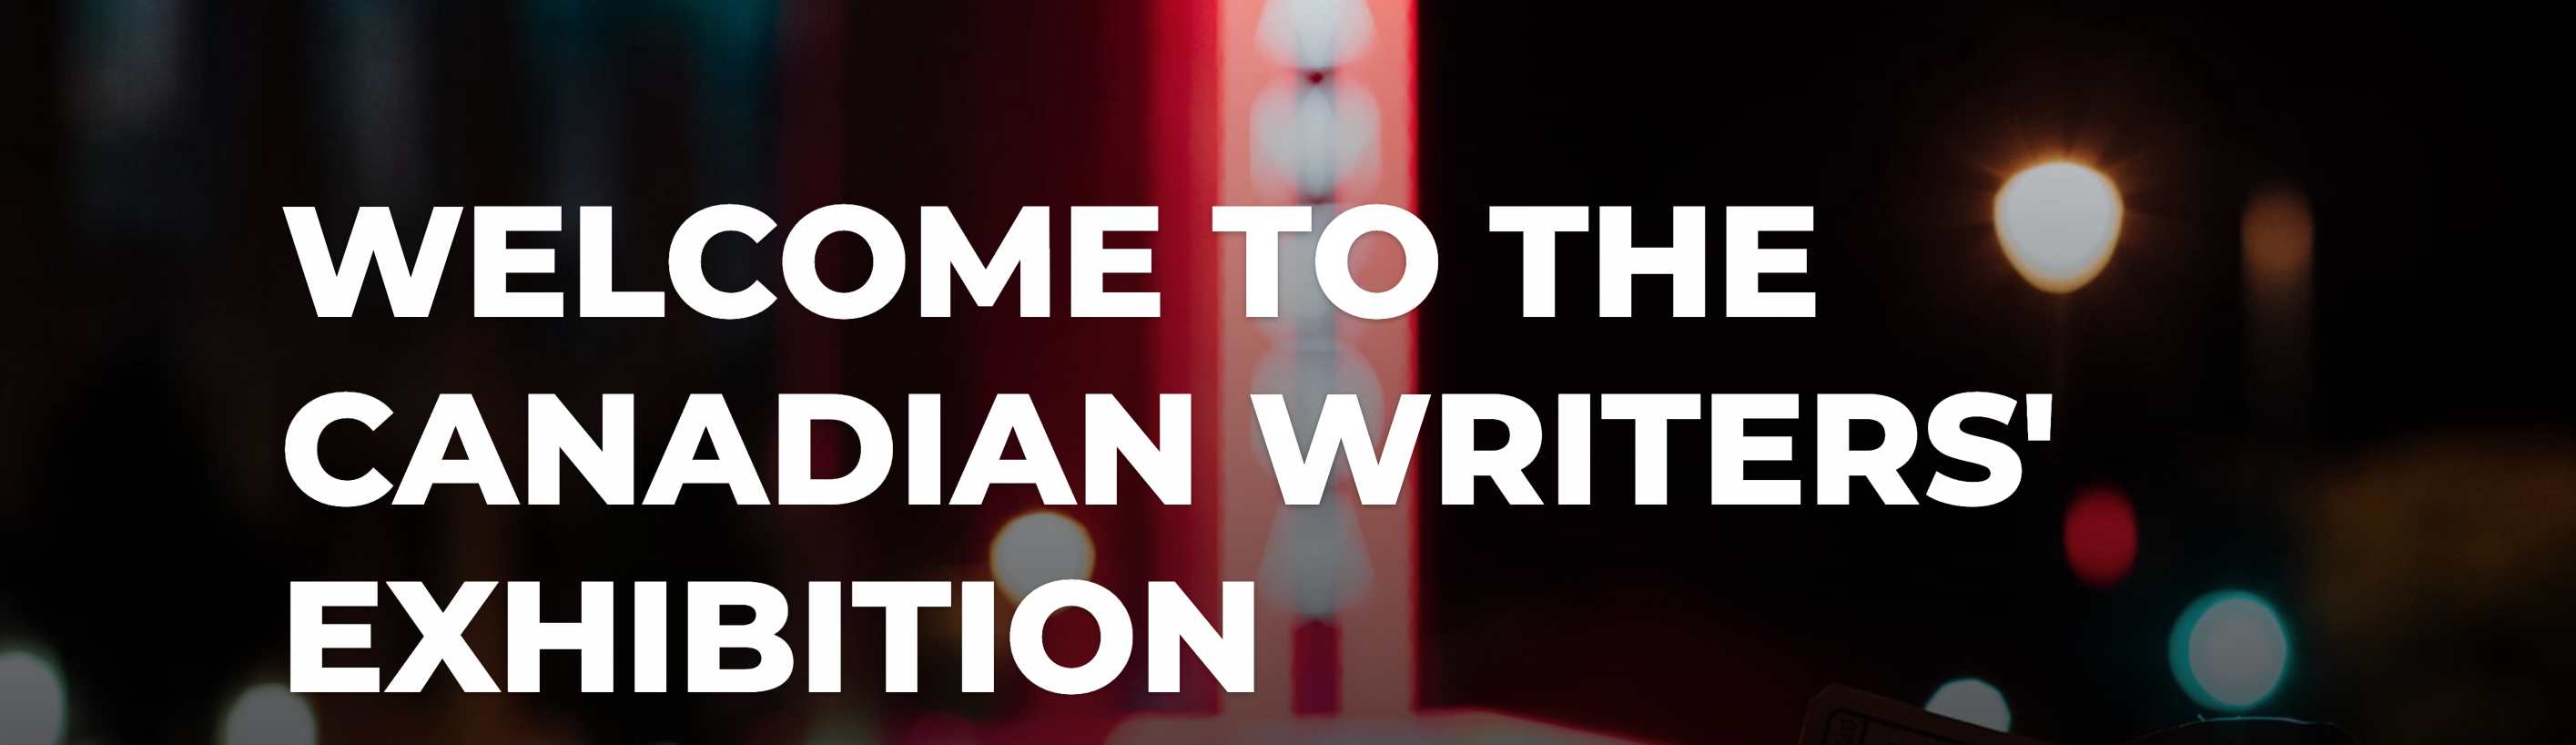 The Canadian Writers' Exhibition